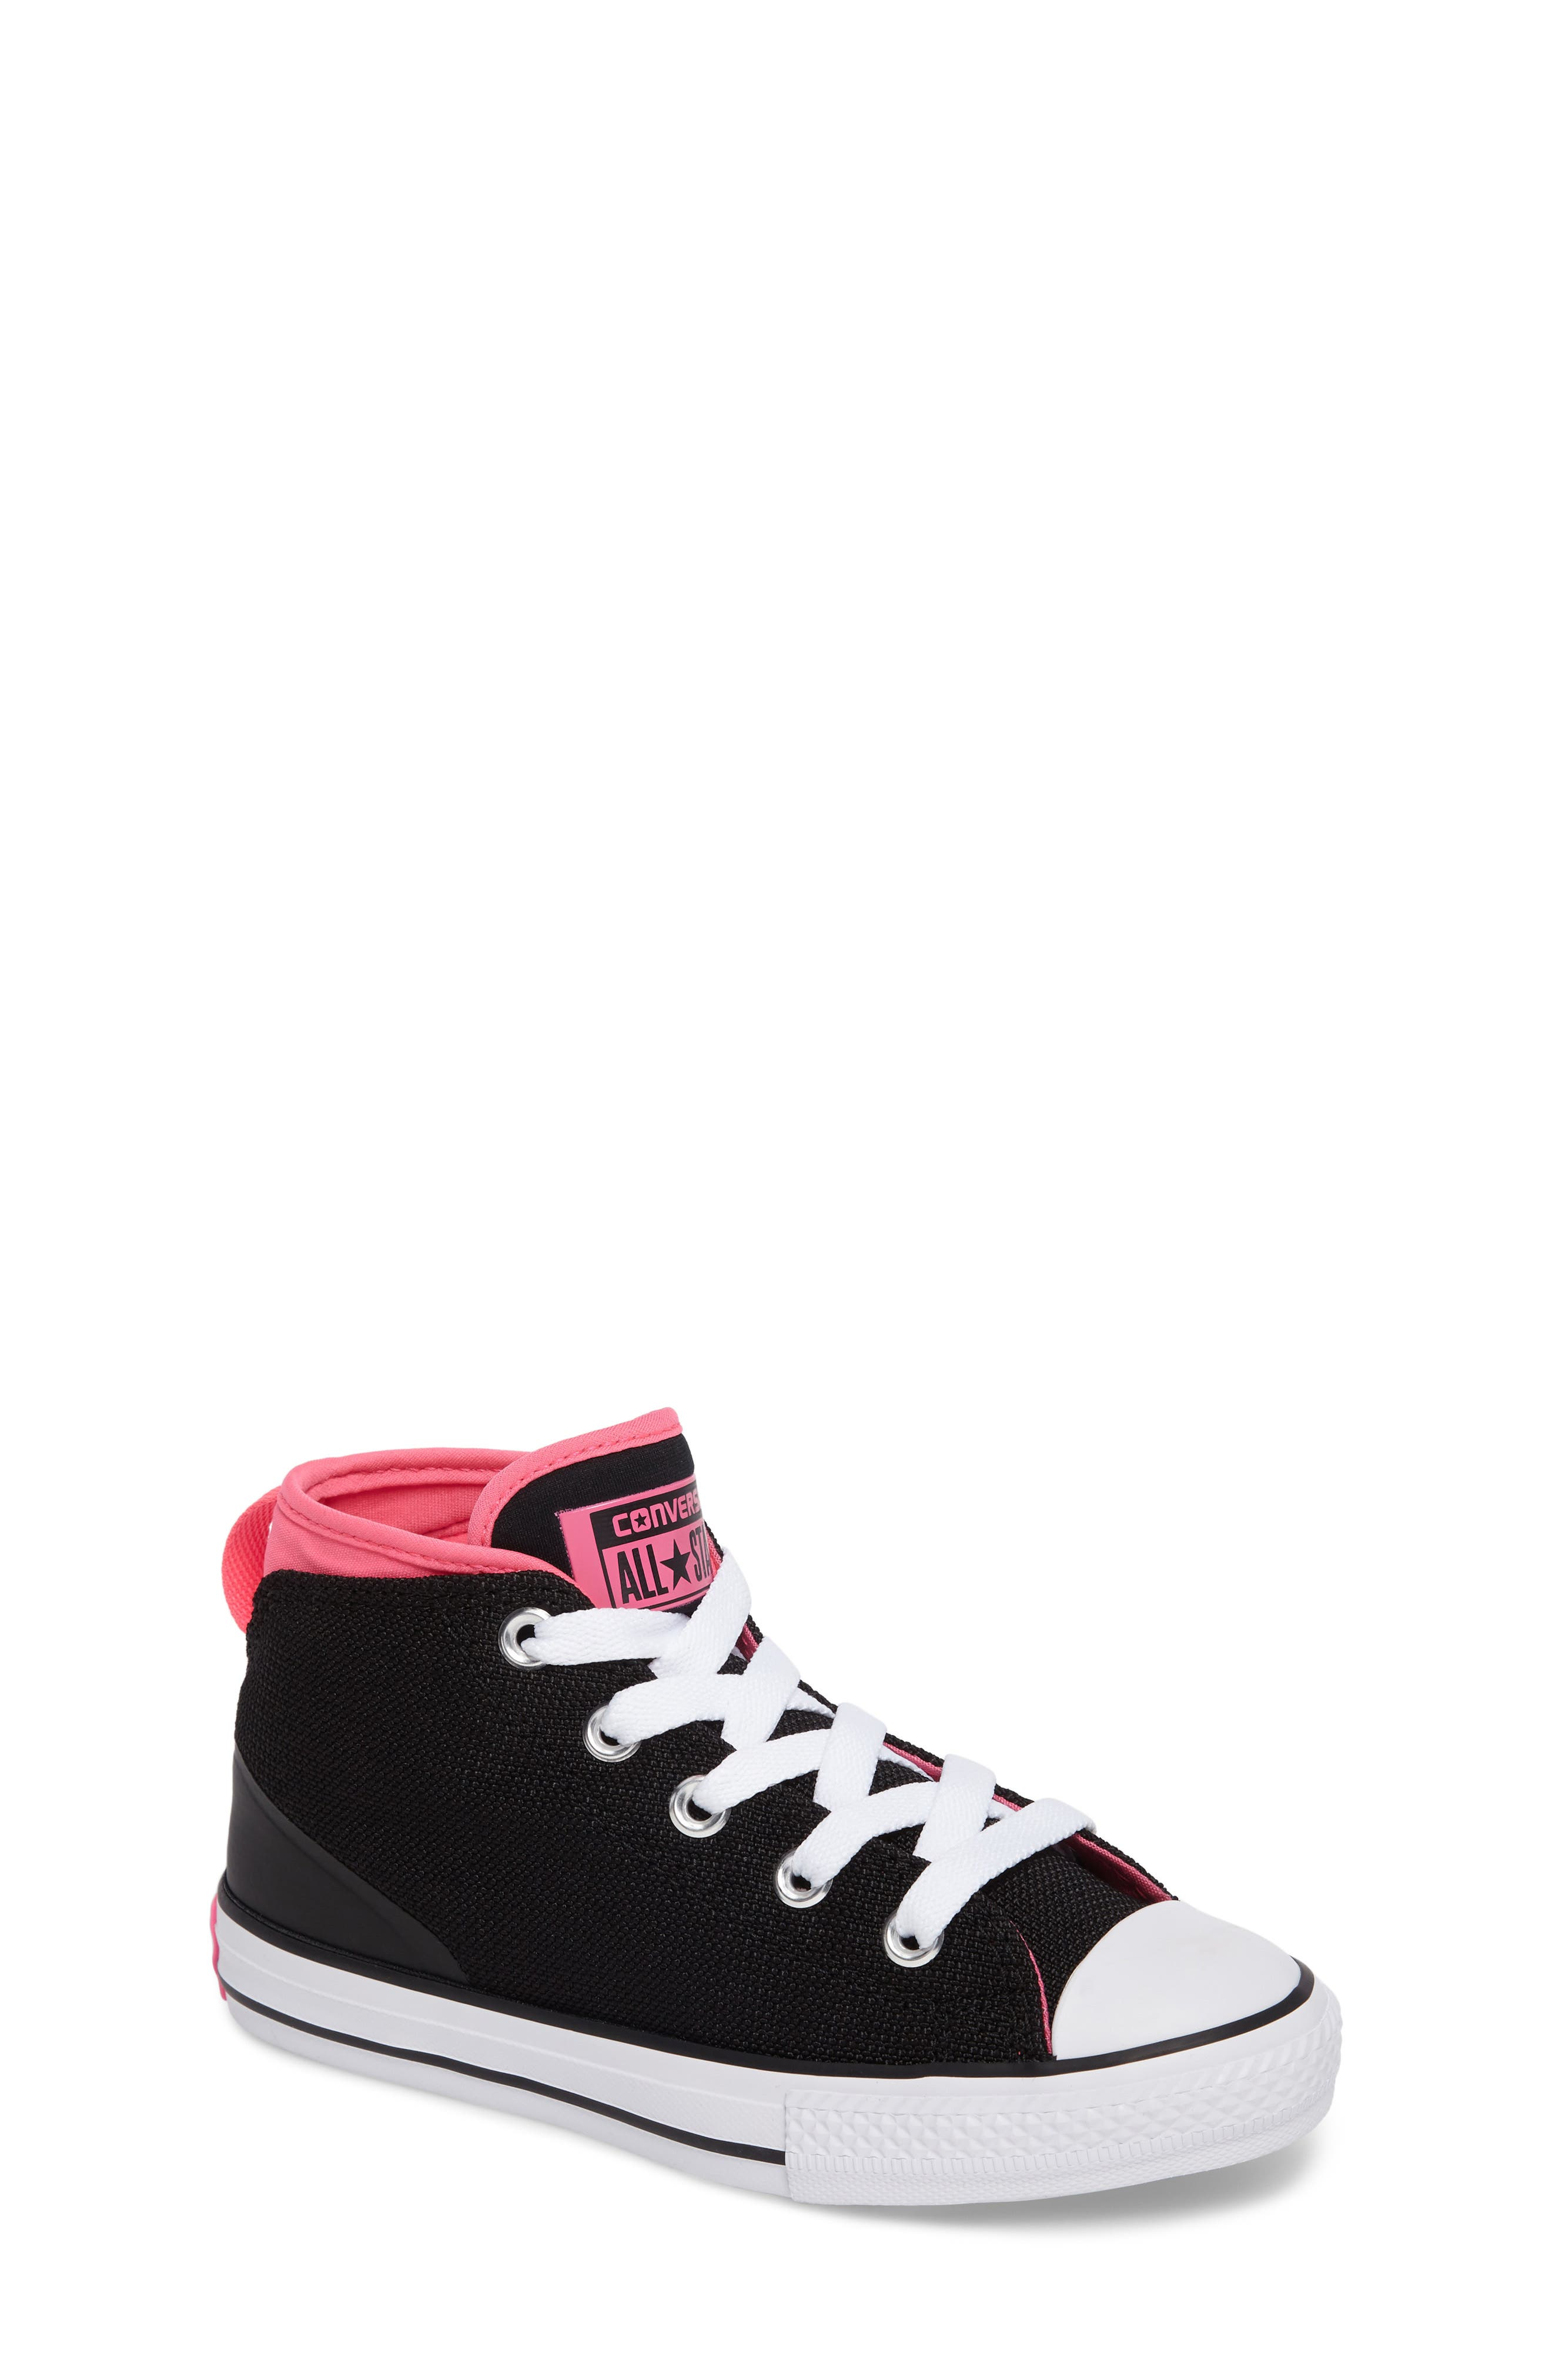 CONVERSE Chuck Taylor<sup>®</sup> All Star<sup>®</sup> Syde Street Sneaker